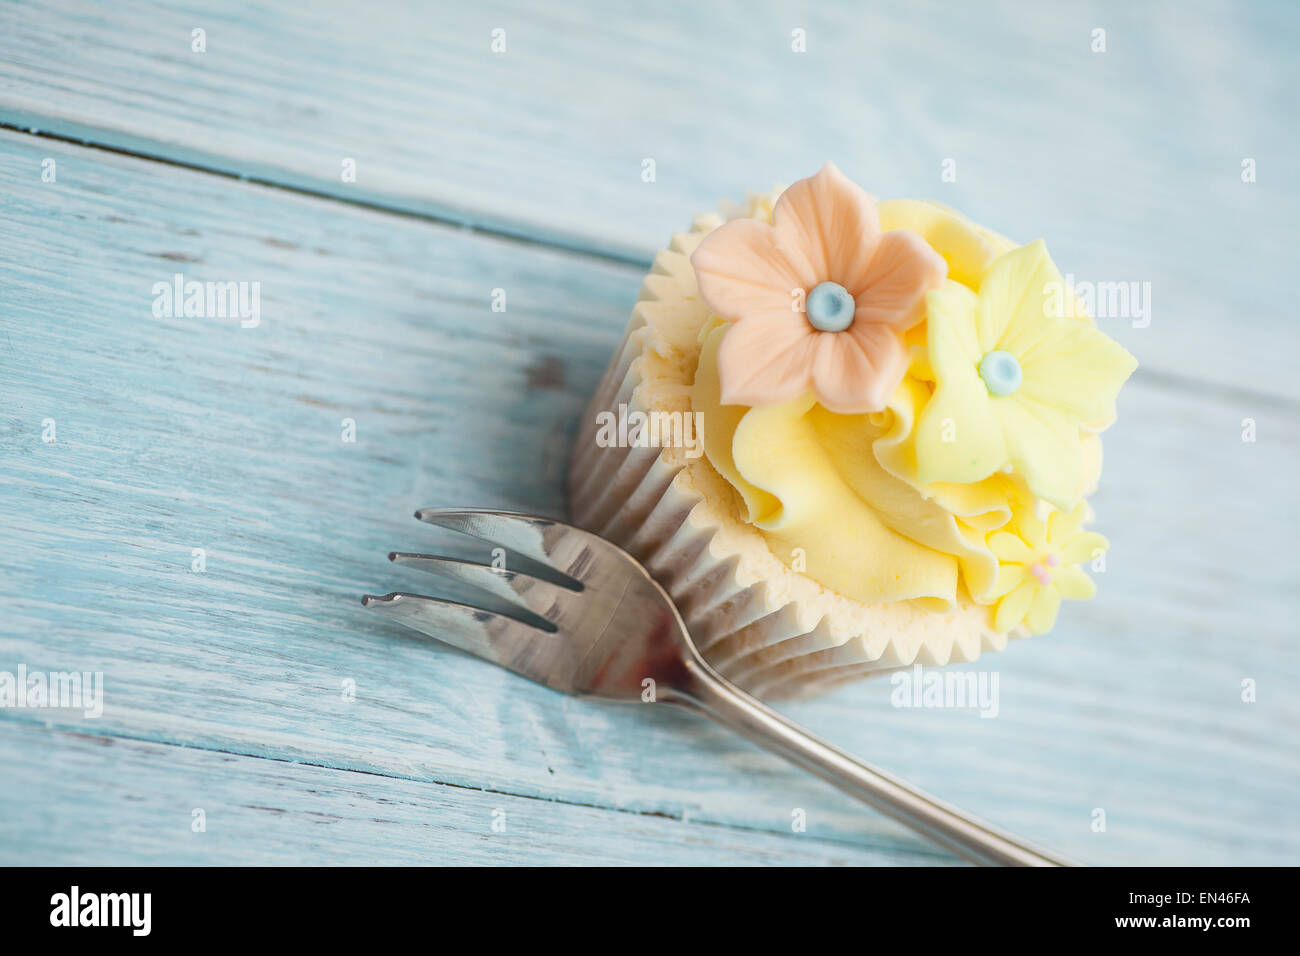 Yellow cupcakes on a wooden board - Stock Image